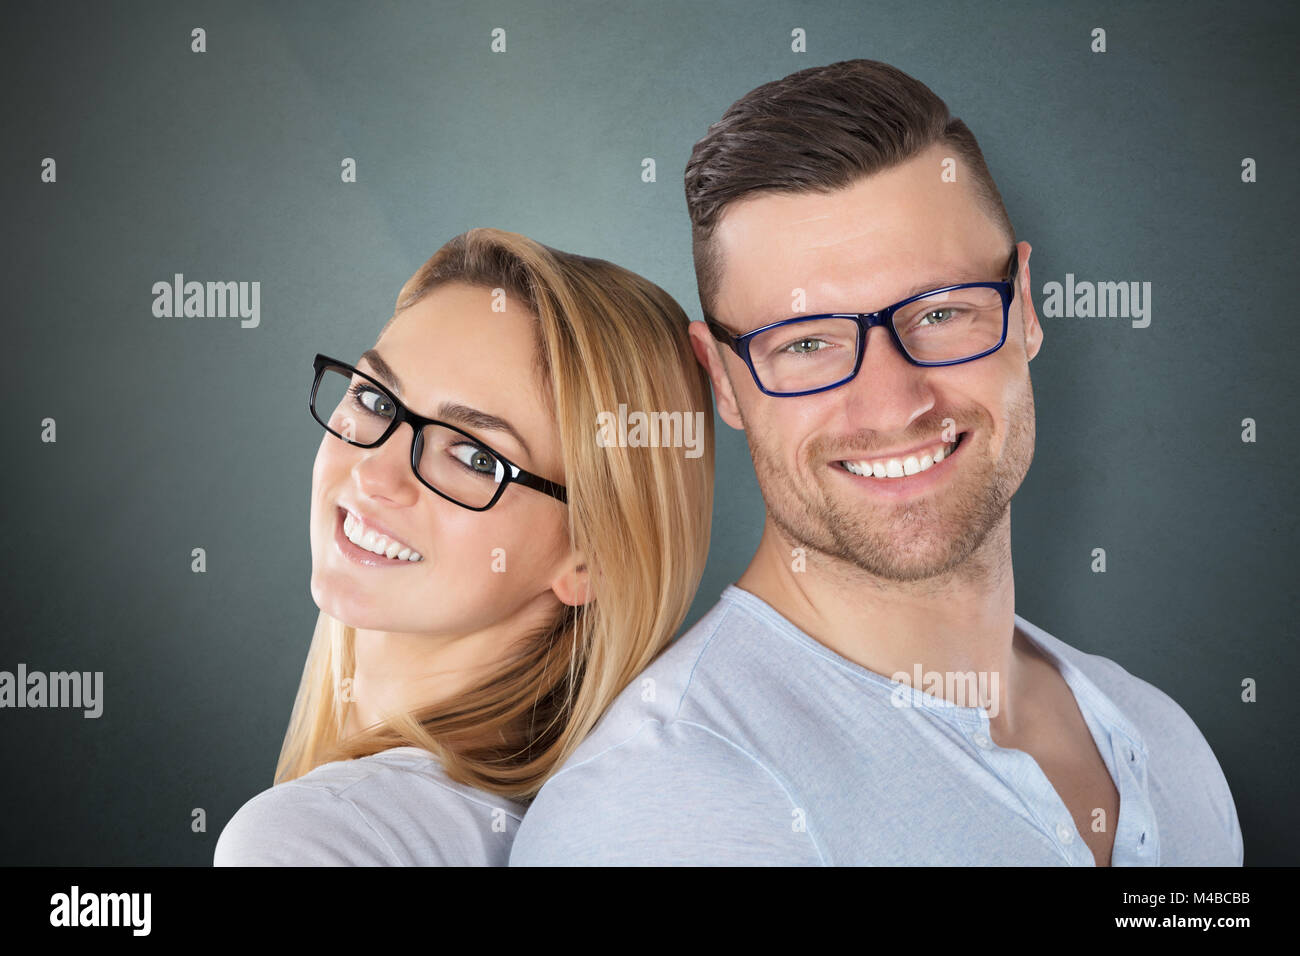 a2d538d232 Happy Young Couple With Stylish Eyeglasses Against Grey Background ...